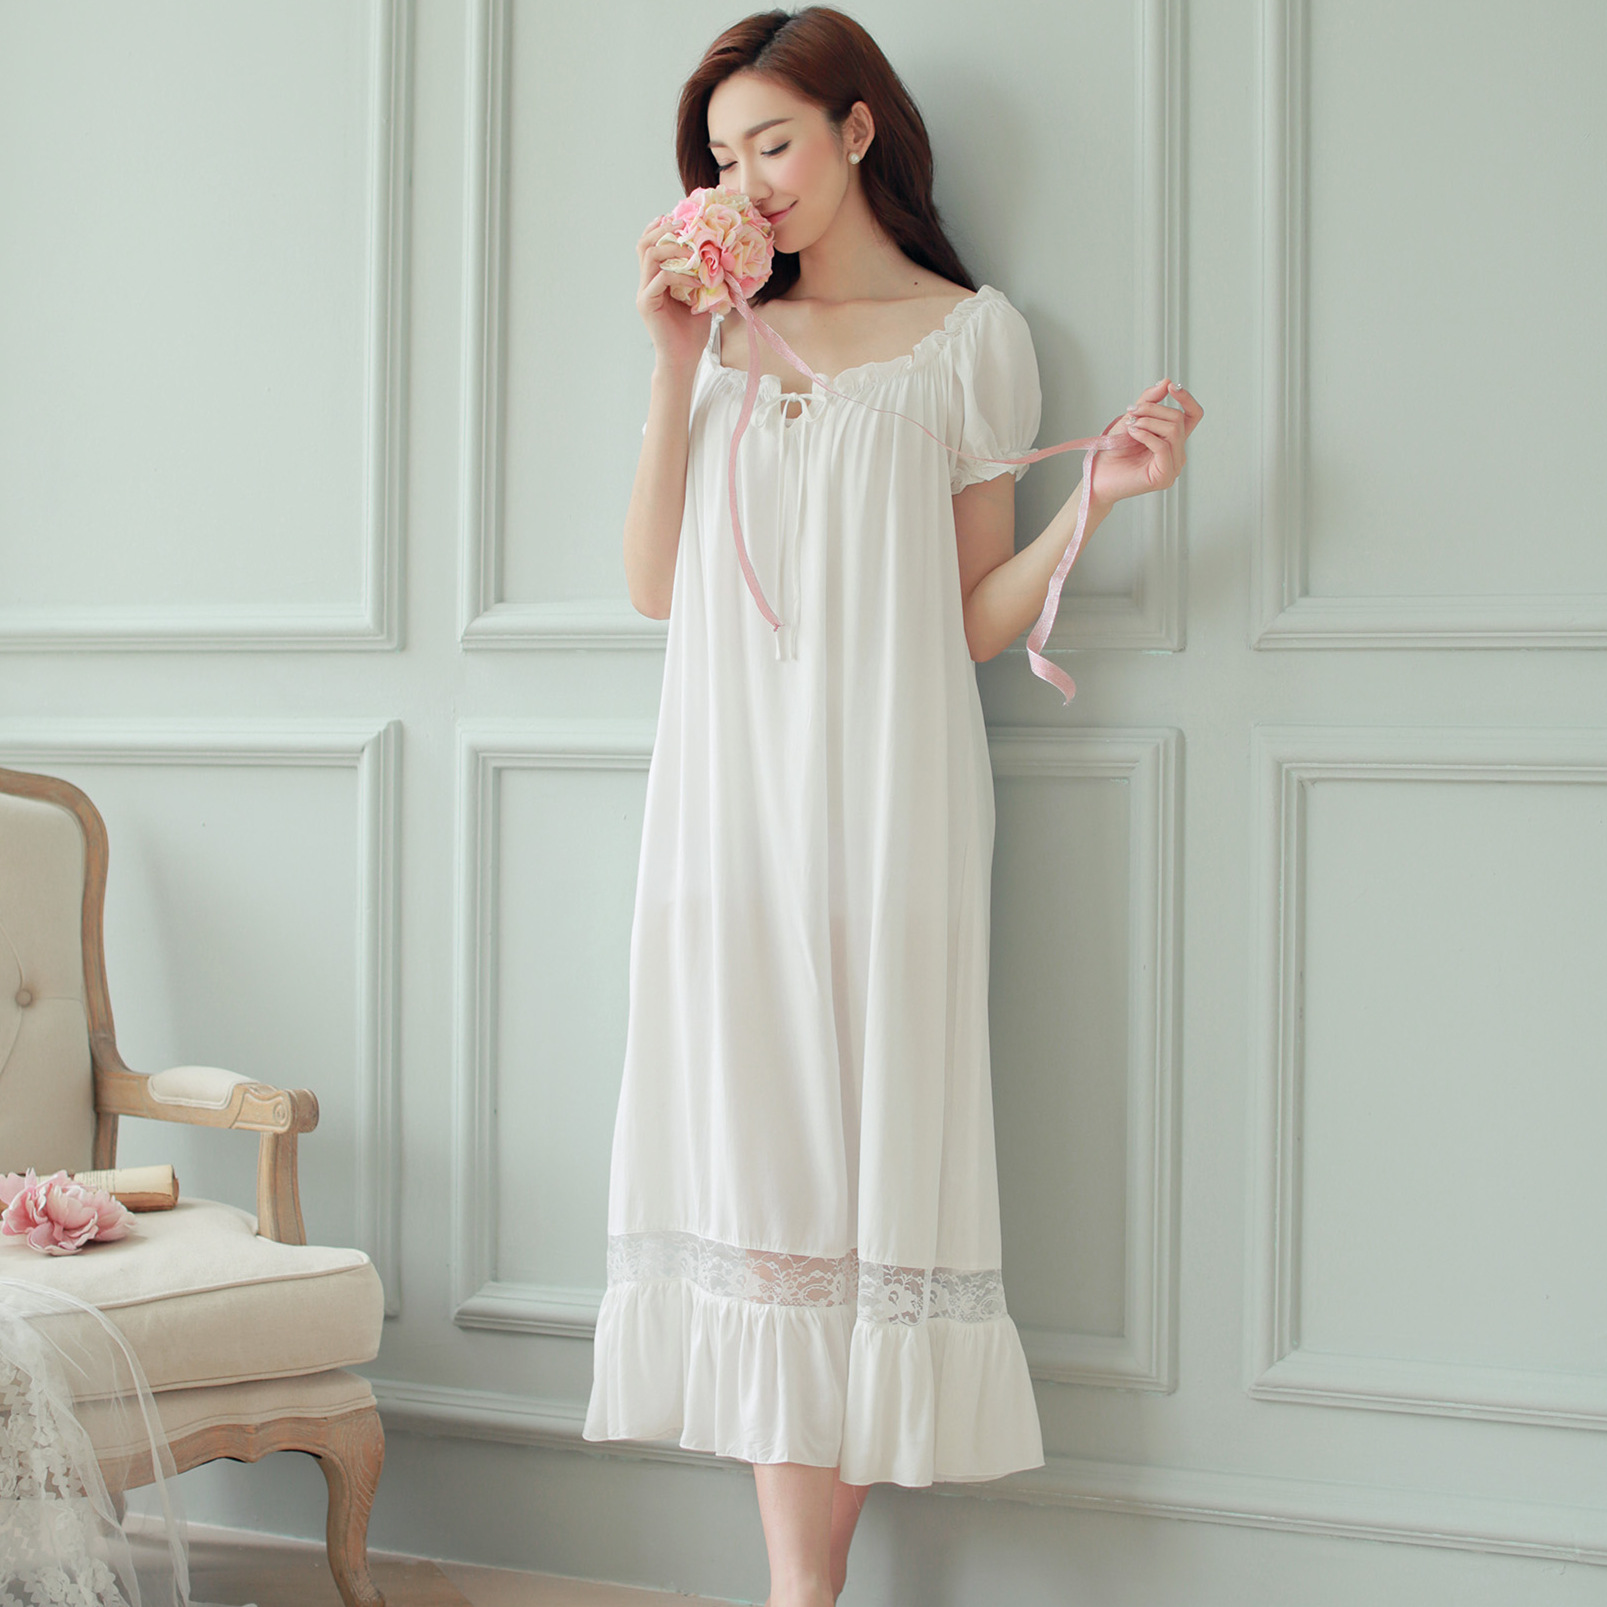 Aliexpress.com : Buy Hot Womens Long Sleeping Dress White Nightgown ...